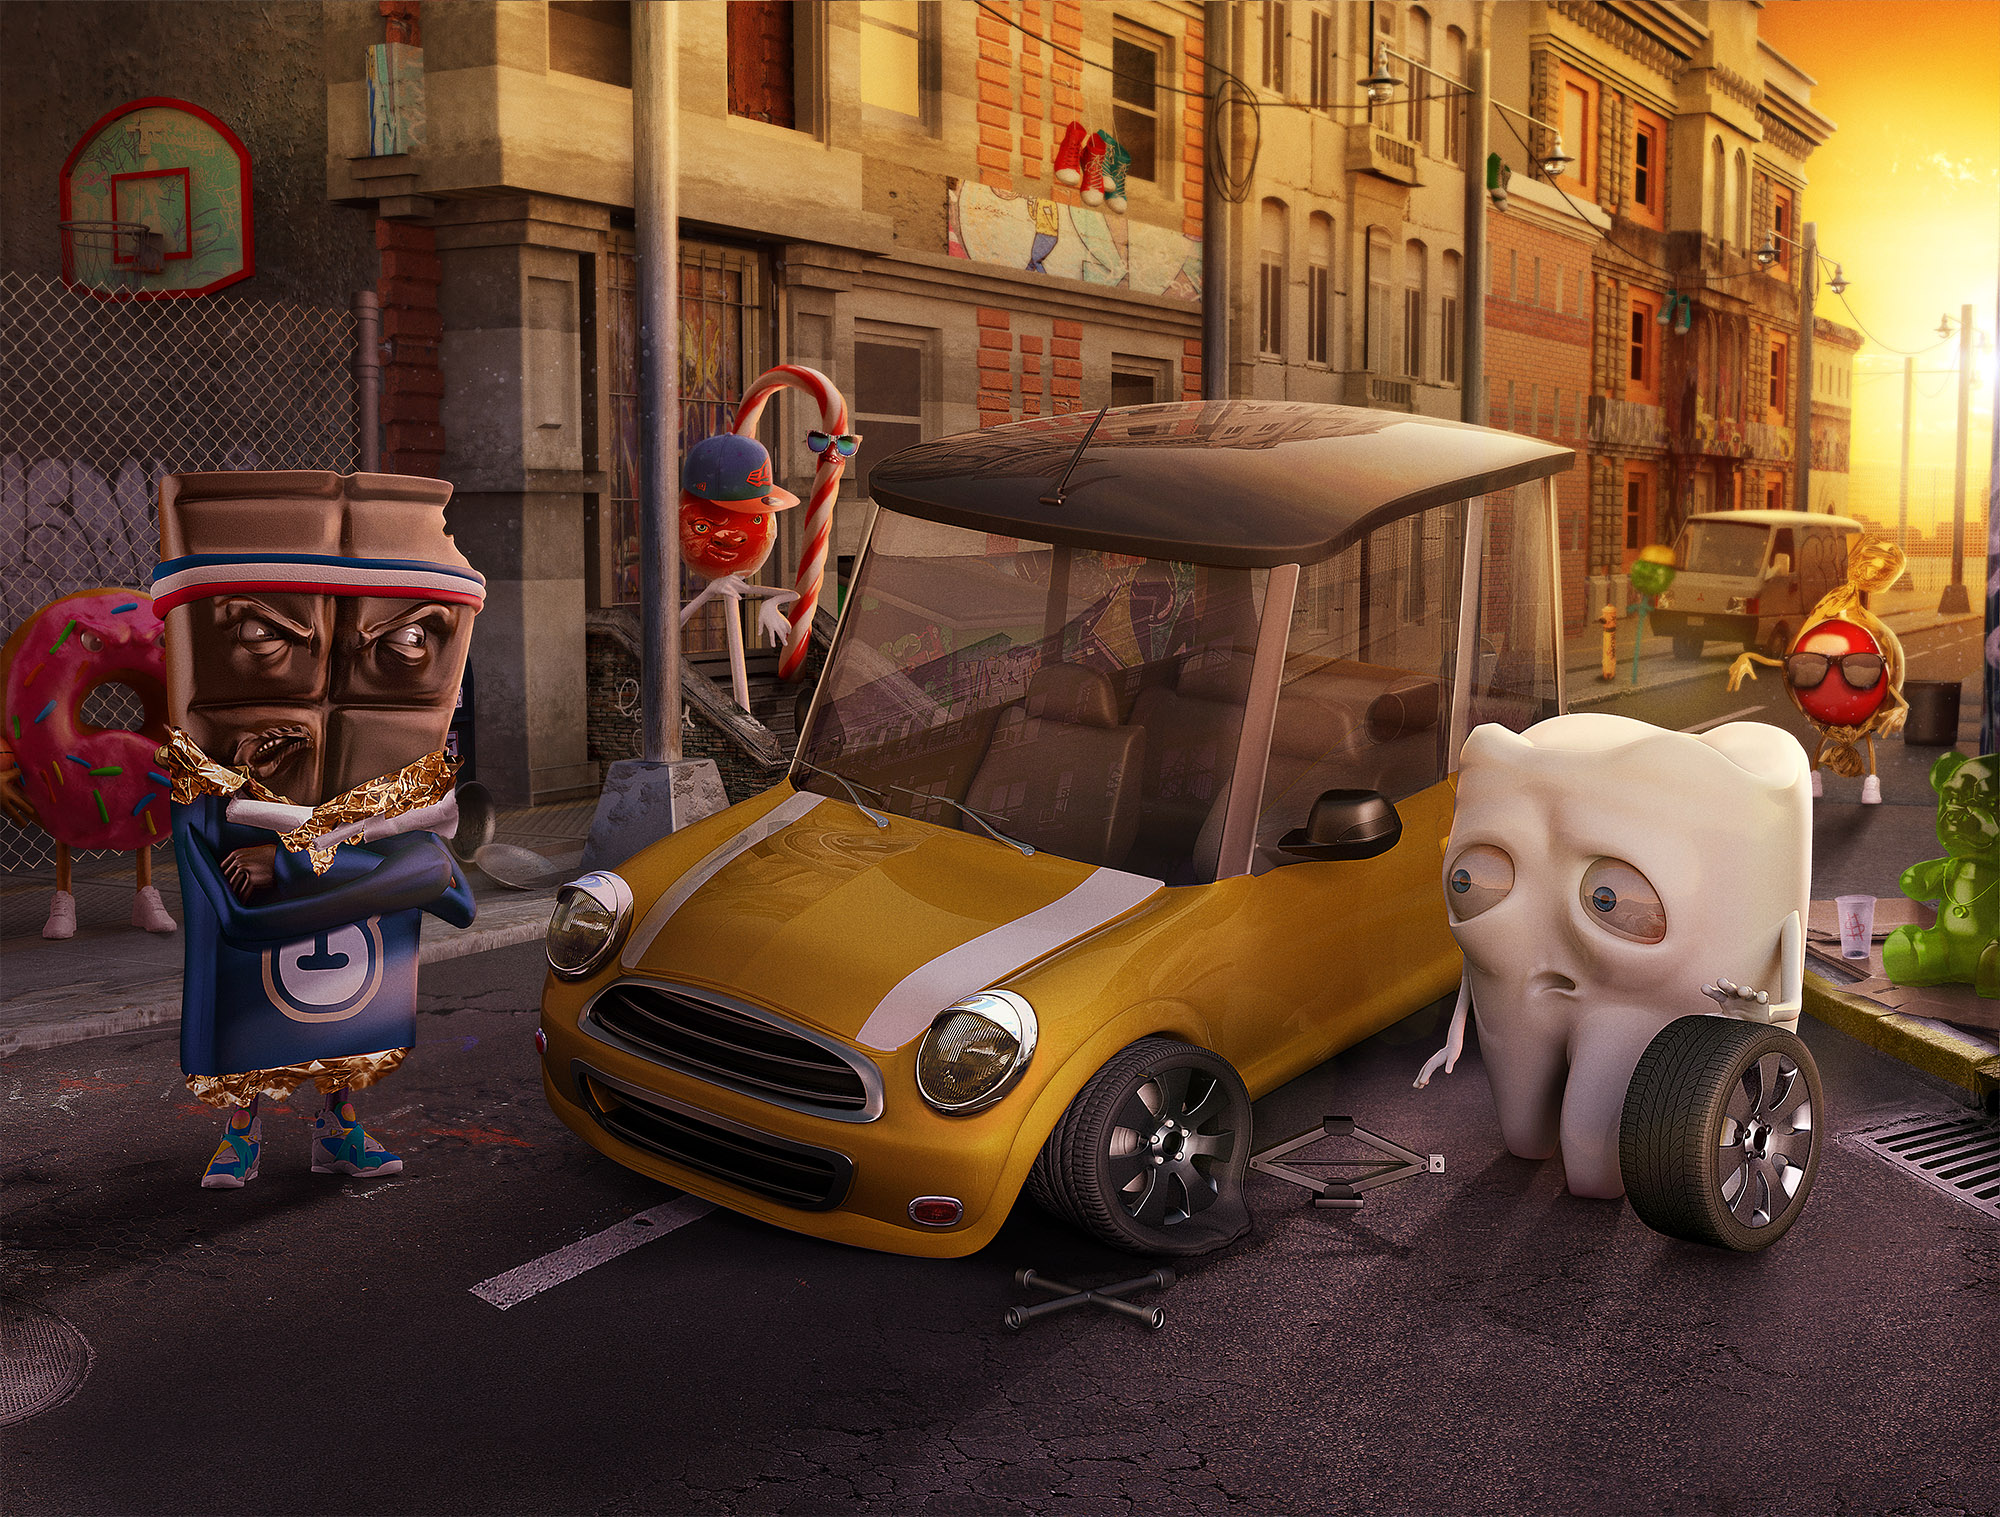 Run-Flat-Bridgestone-Tooth-vs-Candies-Lamano-Studio-Illustration-Post-Production-CGI-Animation-Handcraft-Photography